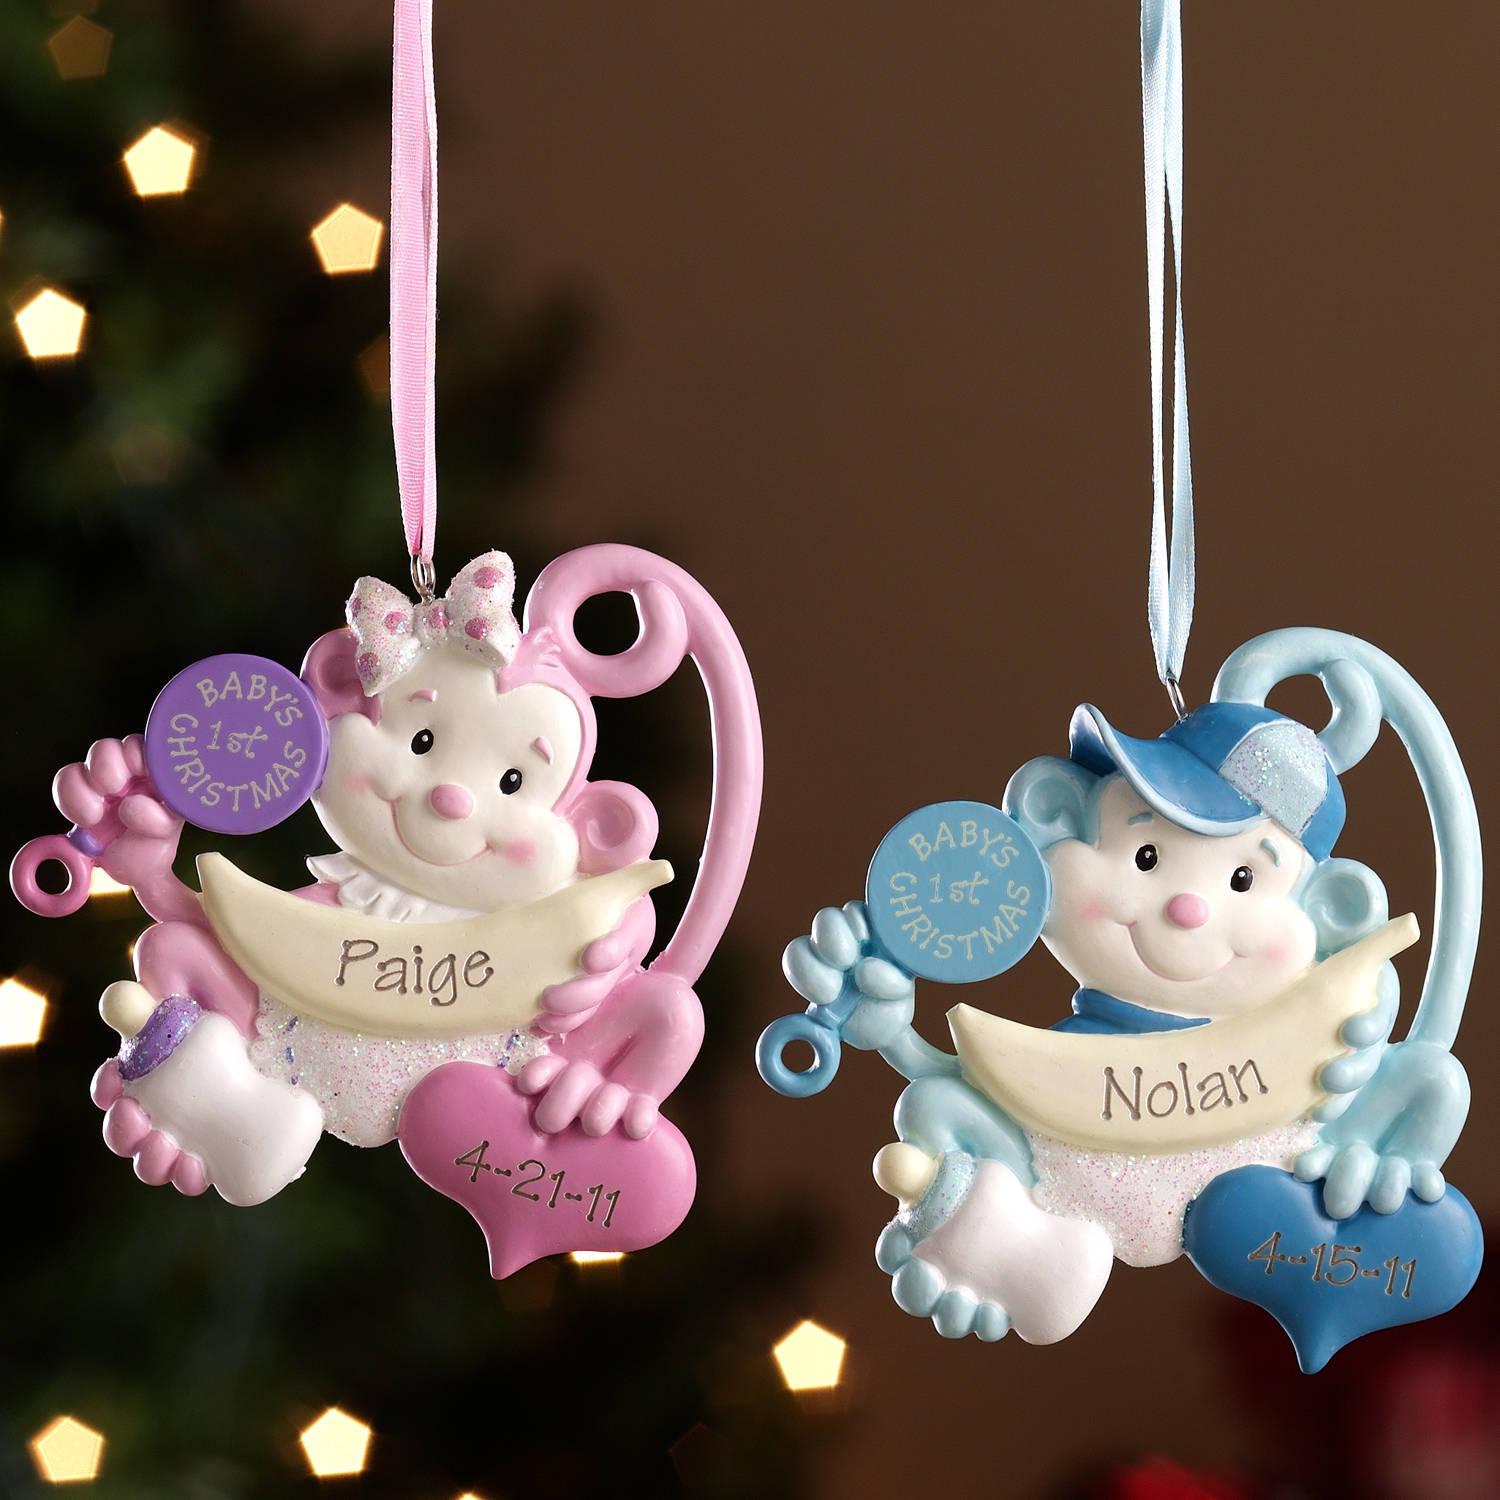 Personalized Baby's First Christmas Monkey Ornament - Walmart.com